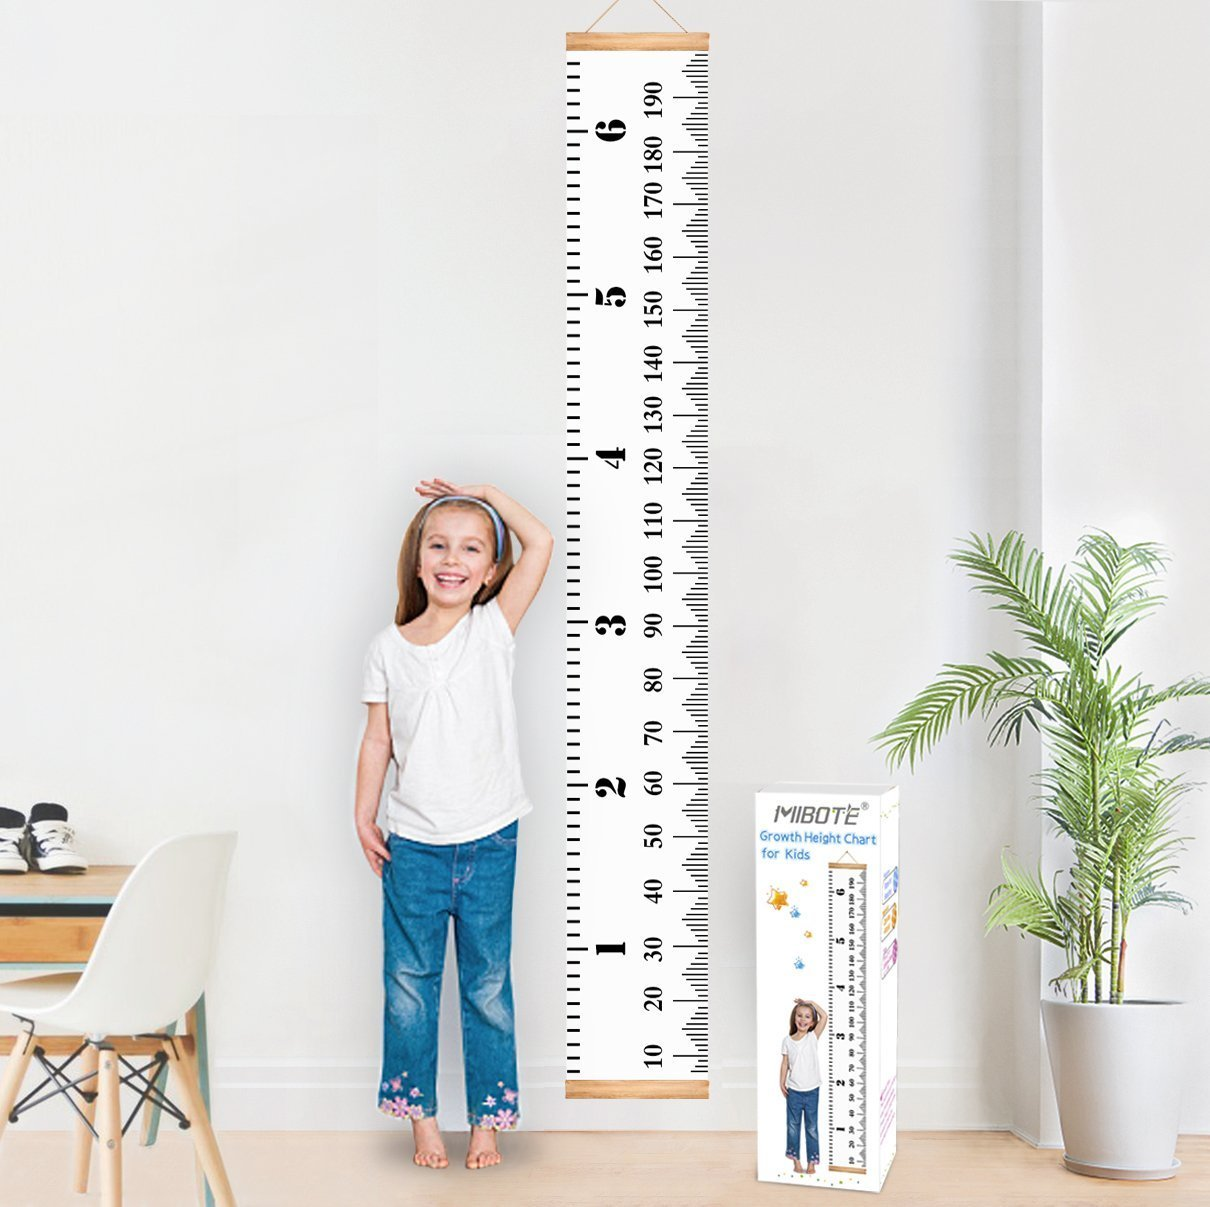 Baby Growth Chart Canvas Wall Hanging Measuring Rulers for Kids Boys Girls Room Decoration Nursery Removable Height and Growth Chart 7.9 x 79 inch Mibote